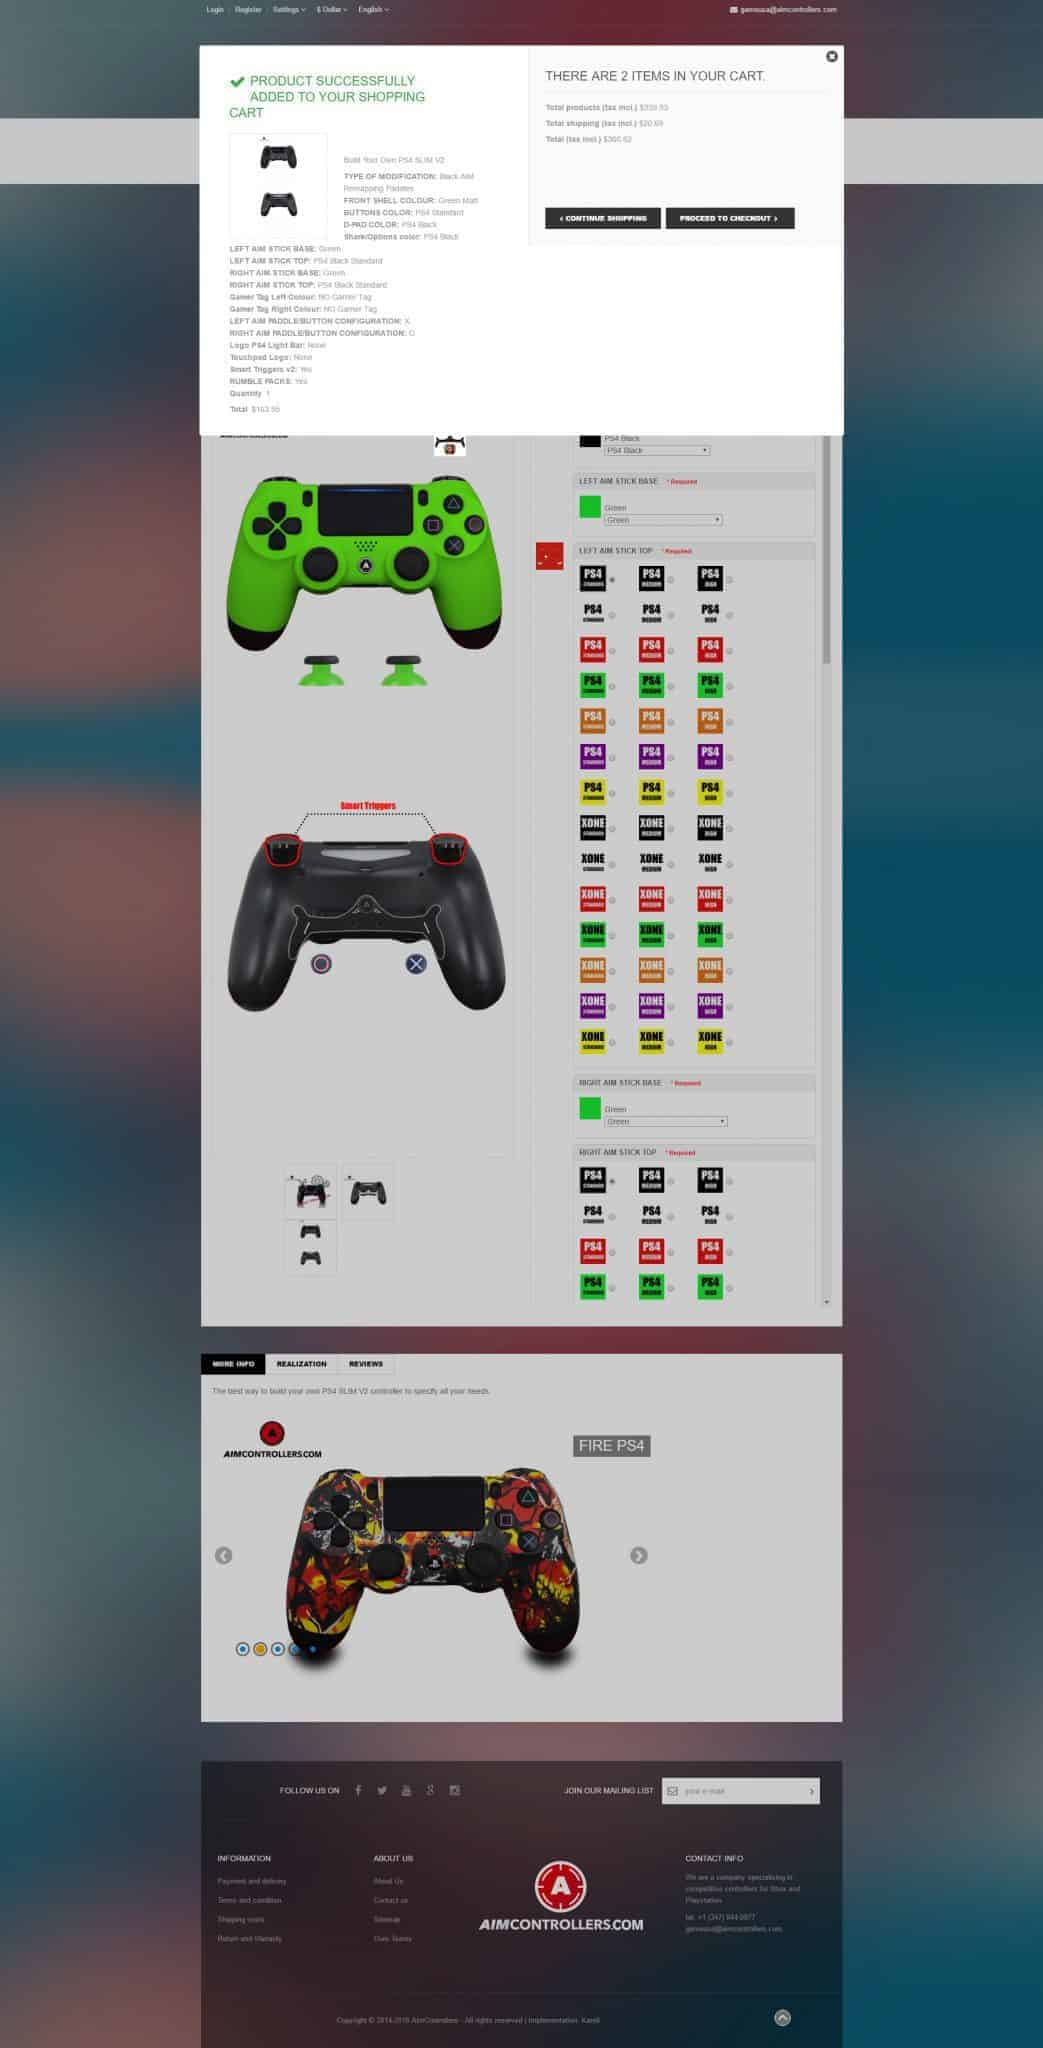 Aim Controllers Ps4 And Xbox One Modded Controller Review